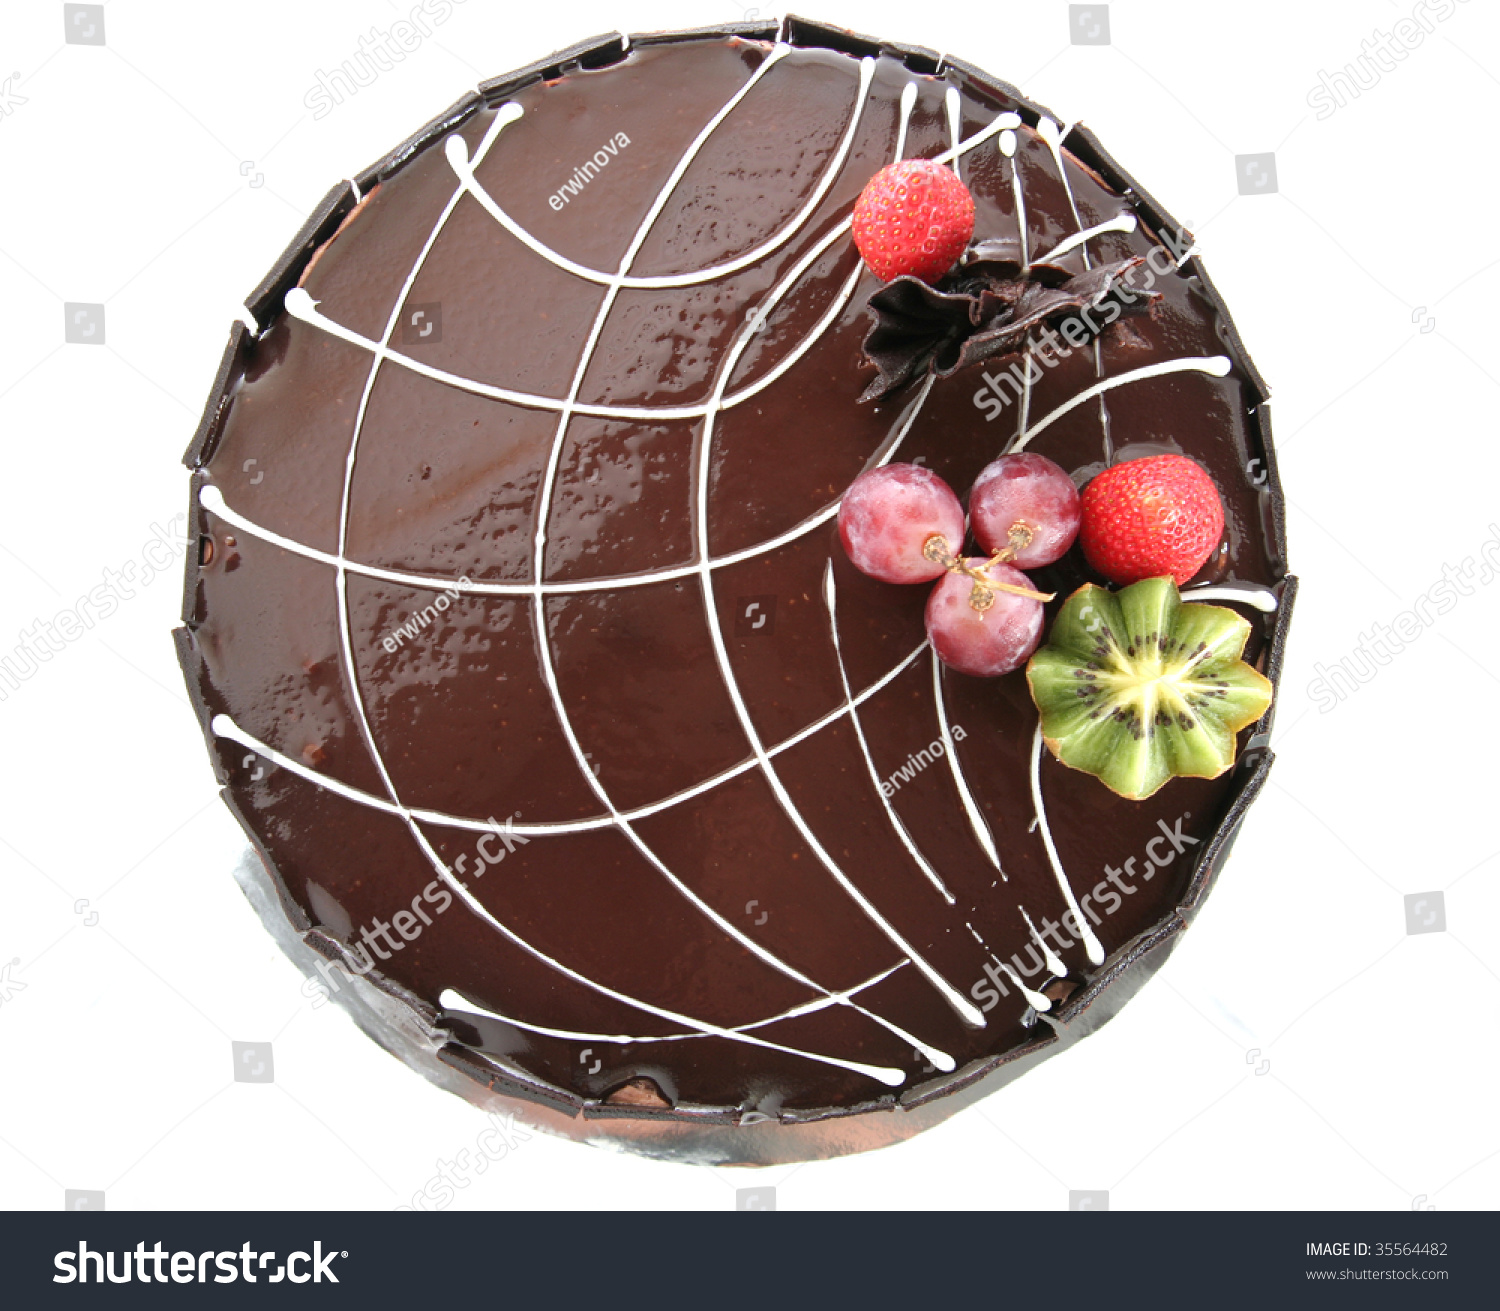 Cake Images Top View : Choclate Cake Top View Stock Photo 35564482 : Shutterstock